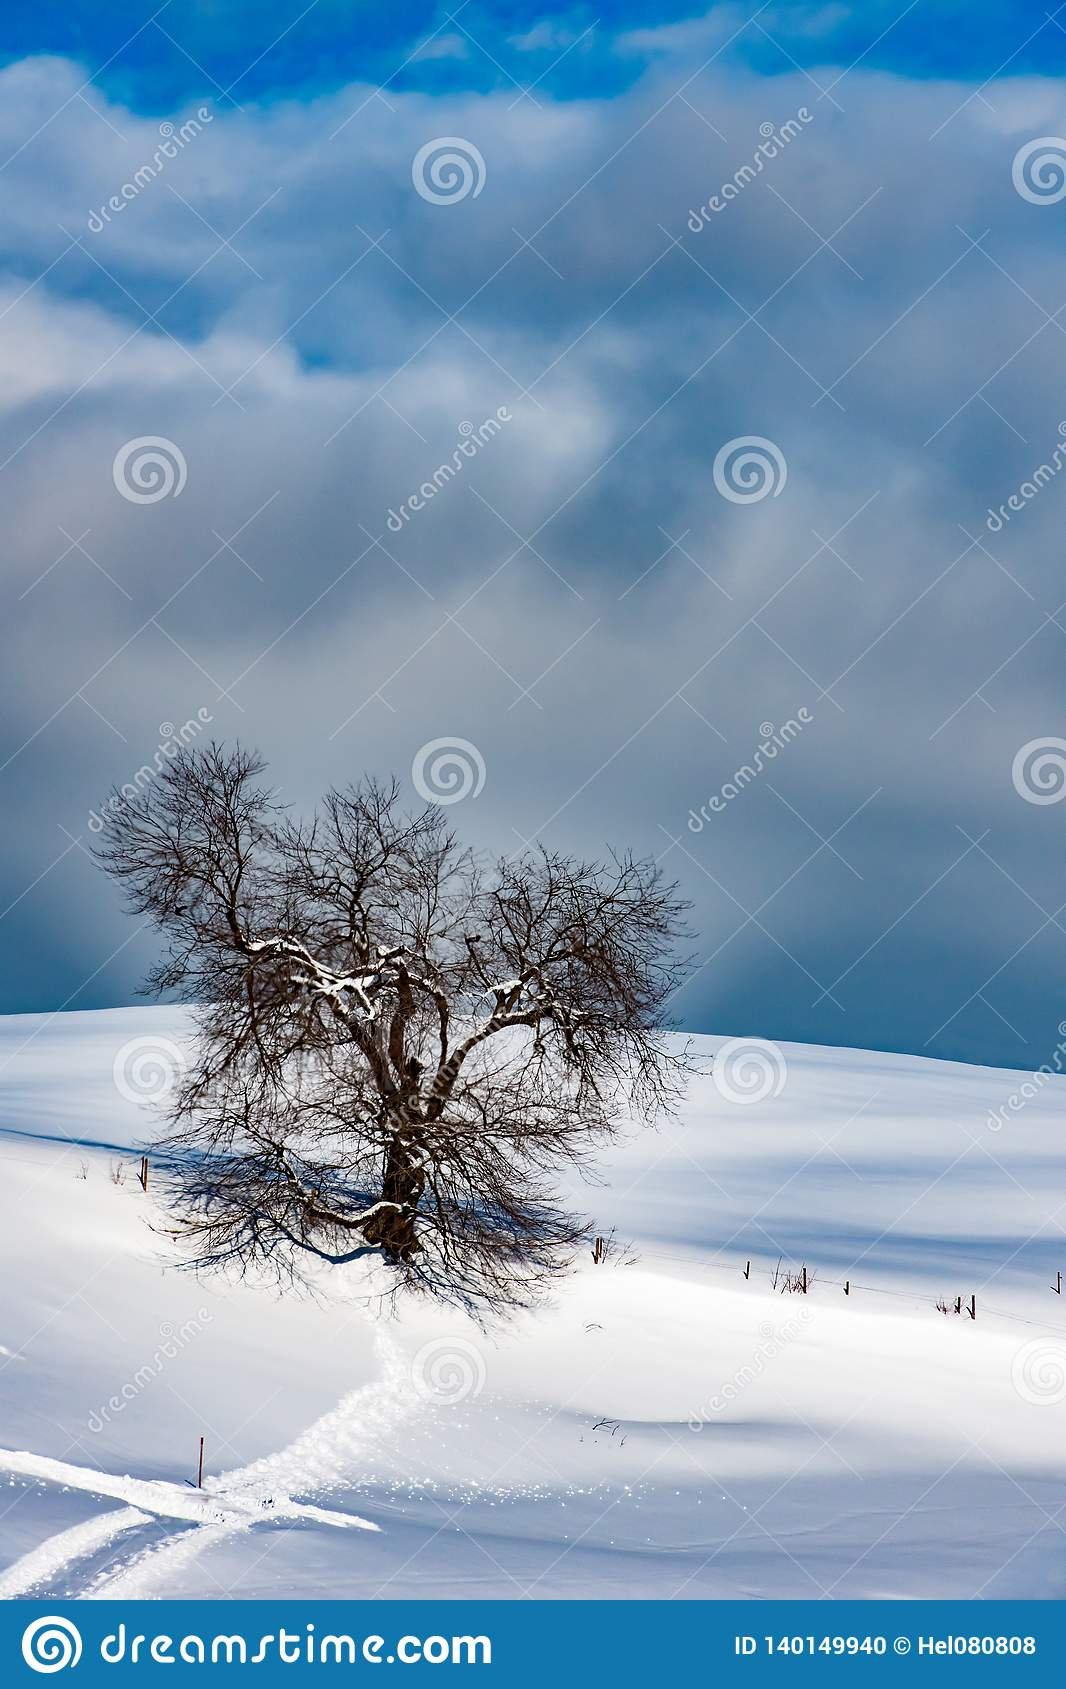 Tree in snowy landscape, lonely tree, solitary tree on hill in snow covered Allgau in winter